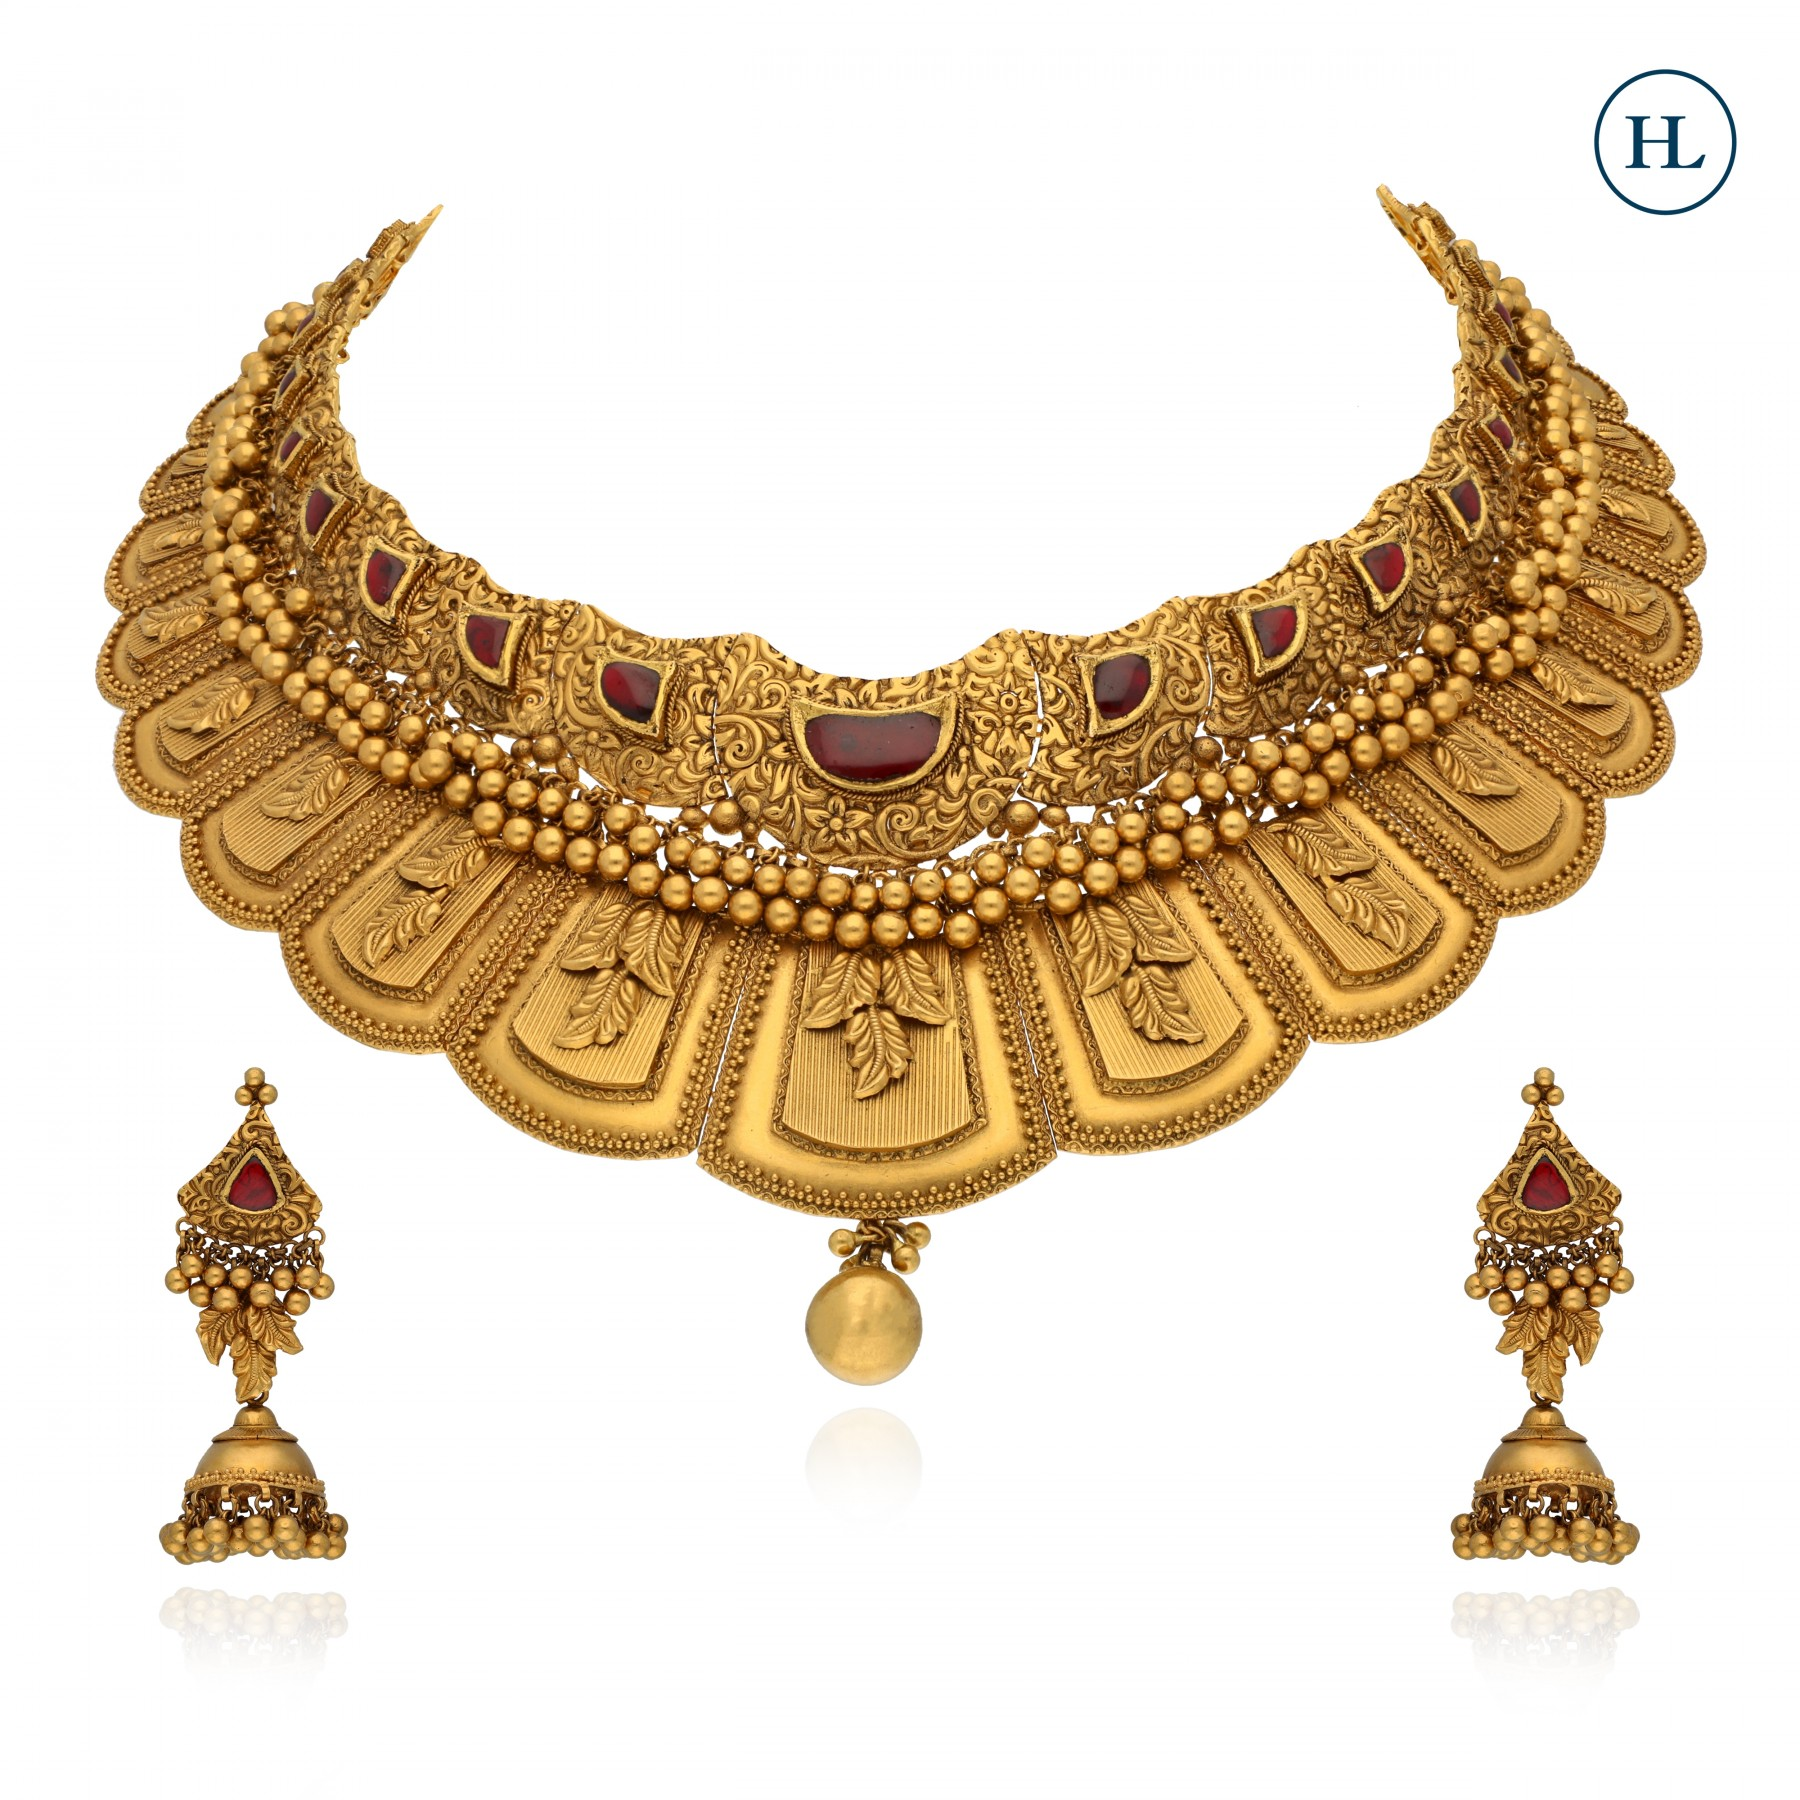 Antique-Styled Gold Necklace Set